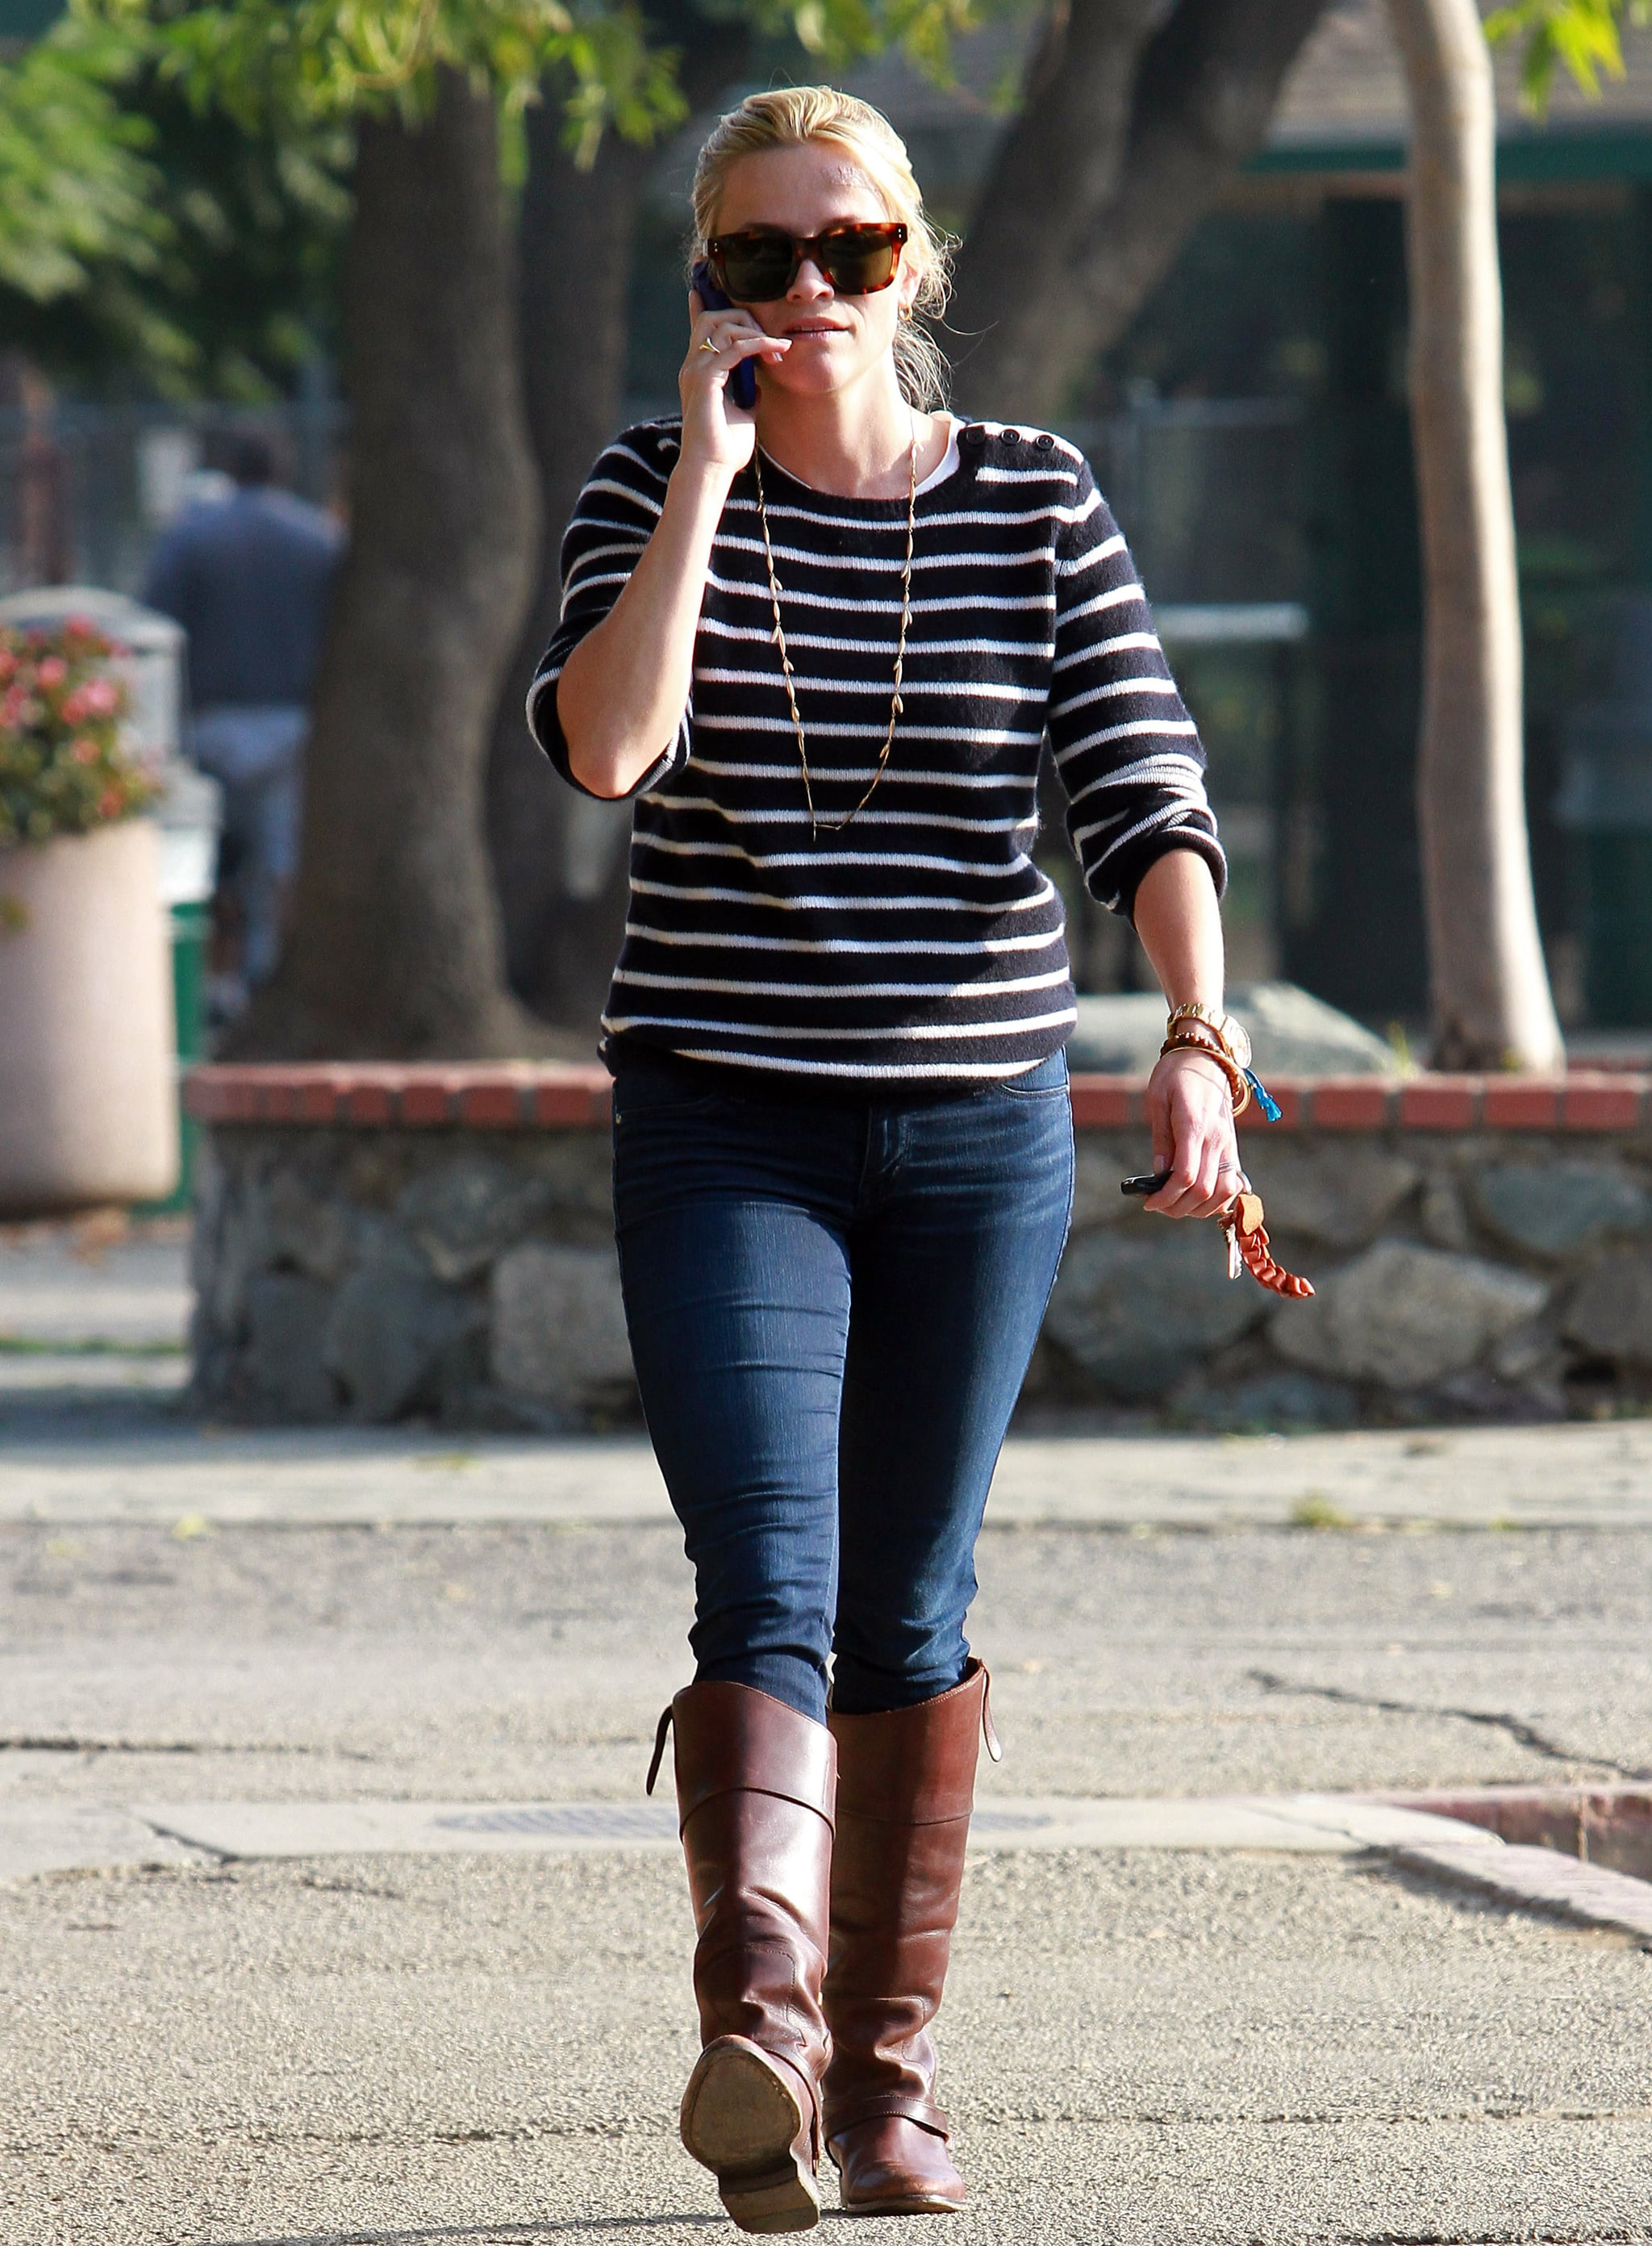 For a day of errands, Reese tucked her skinny jeans into cognac-colored boots and paired them with a chic striped top.